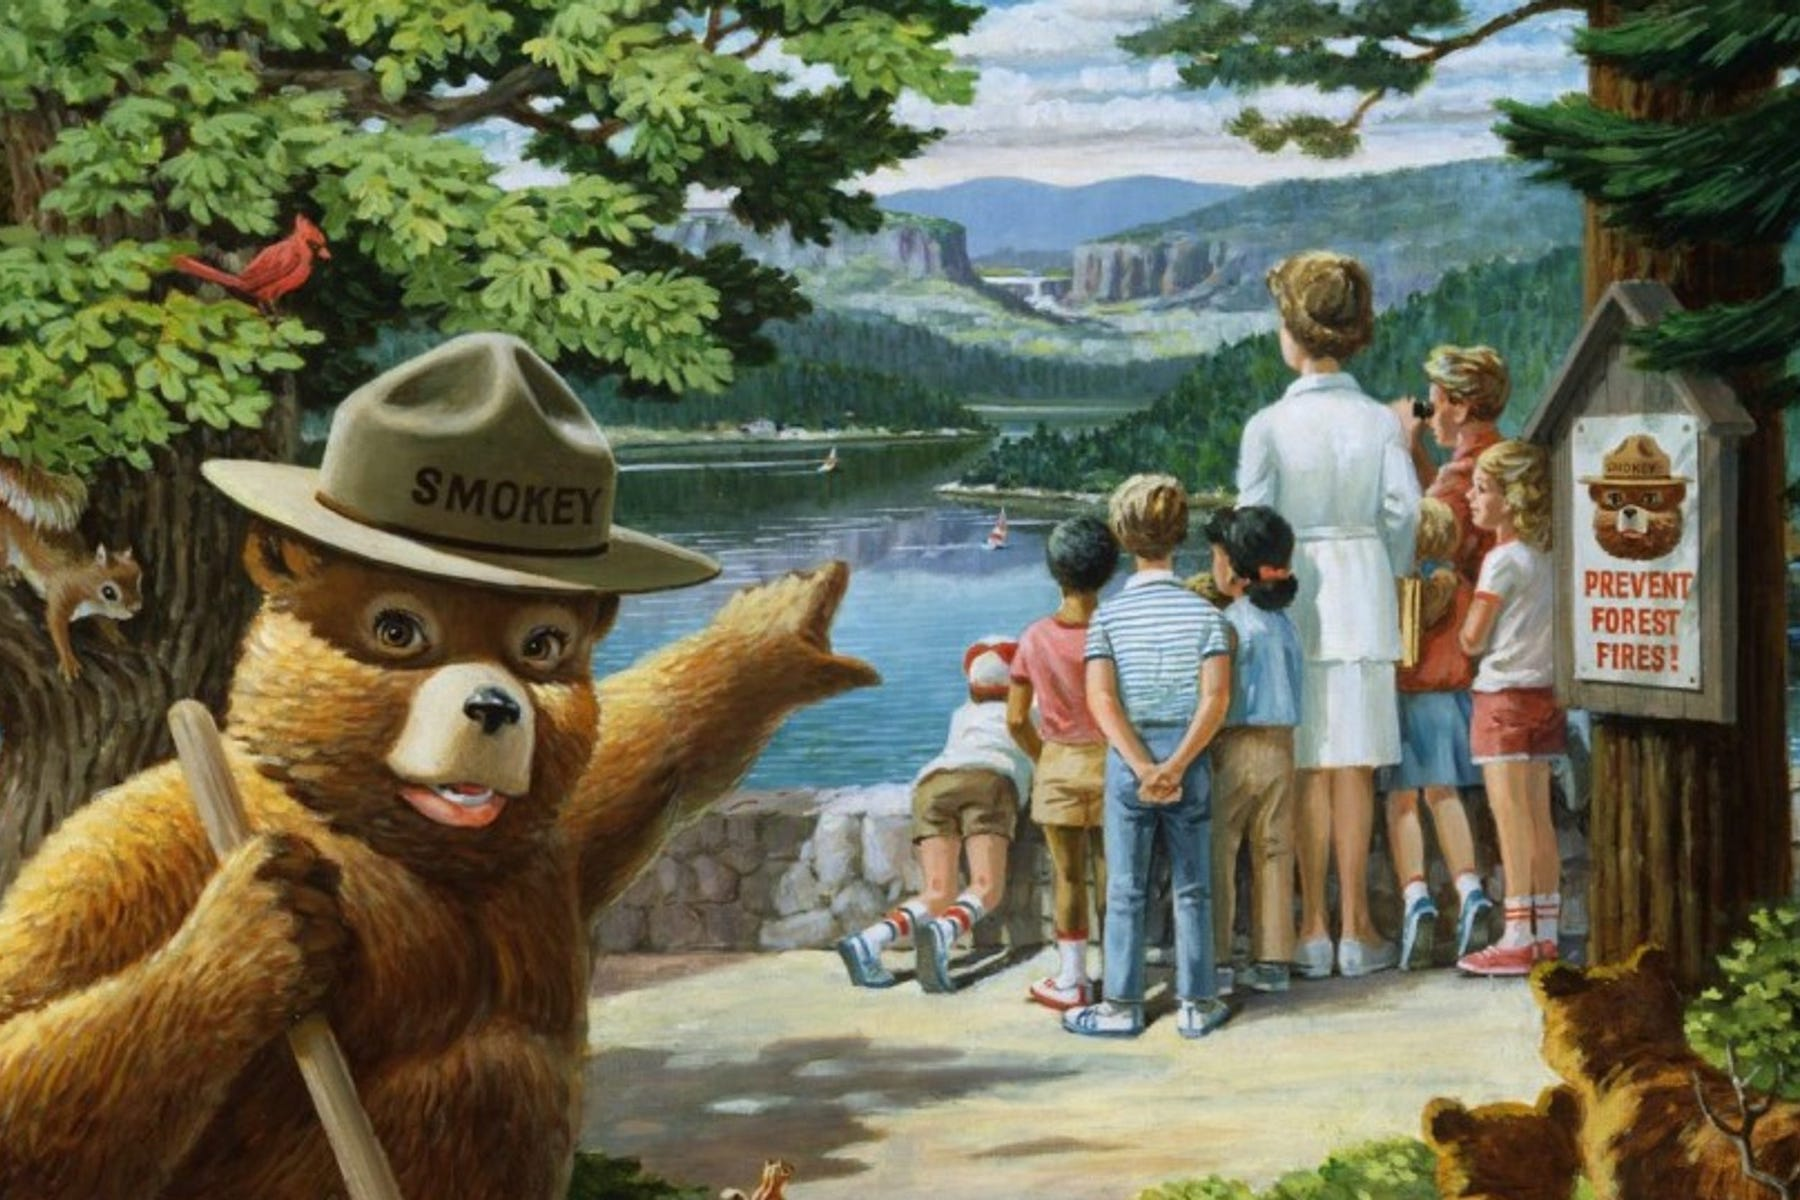 wwii veteran smokey bear turns 75 this year